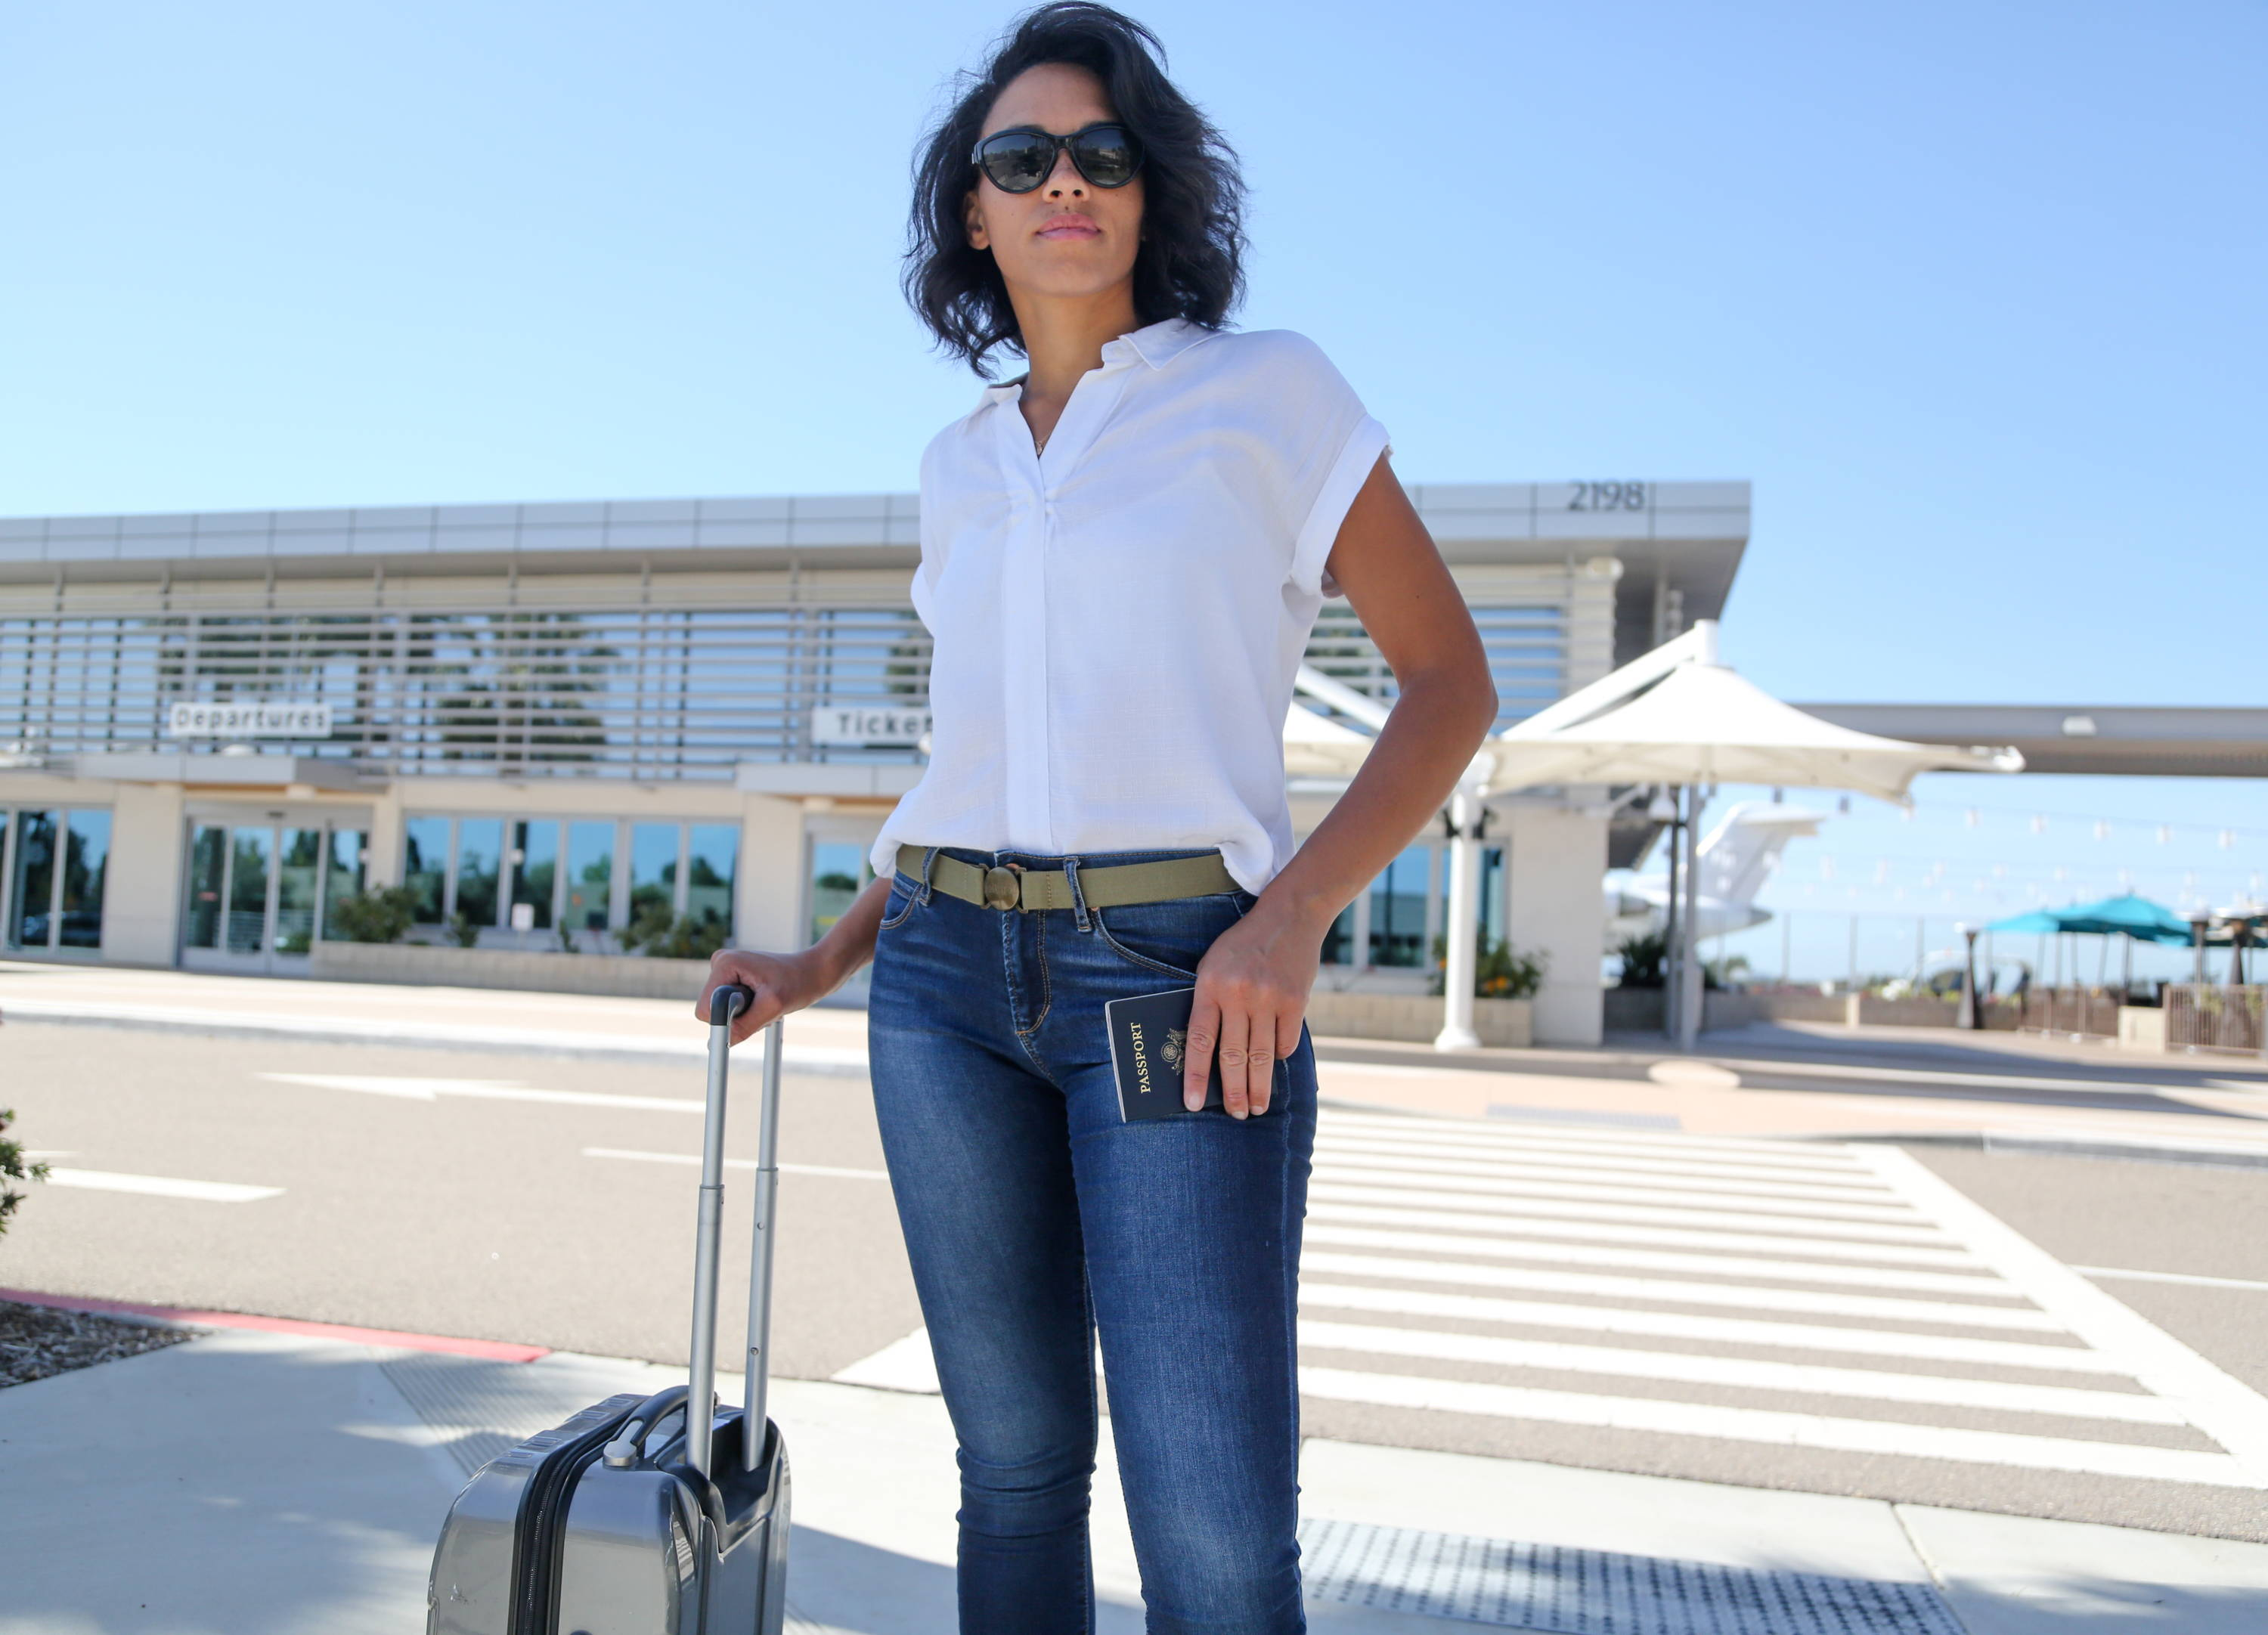 Woman  wearing  a Jelt Original elastic stretch belt in black Granite while traveling through airport  with  suitcase and passport in hand.